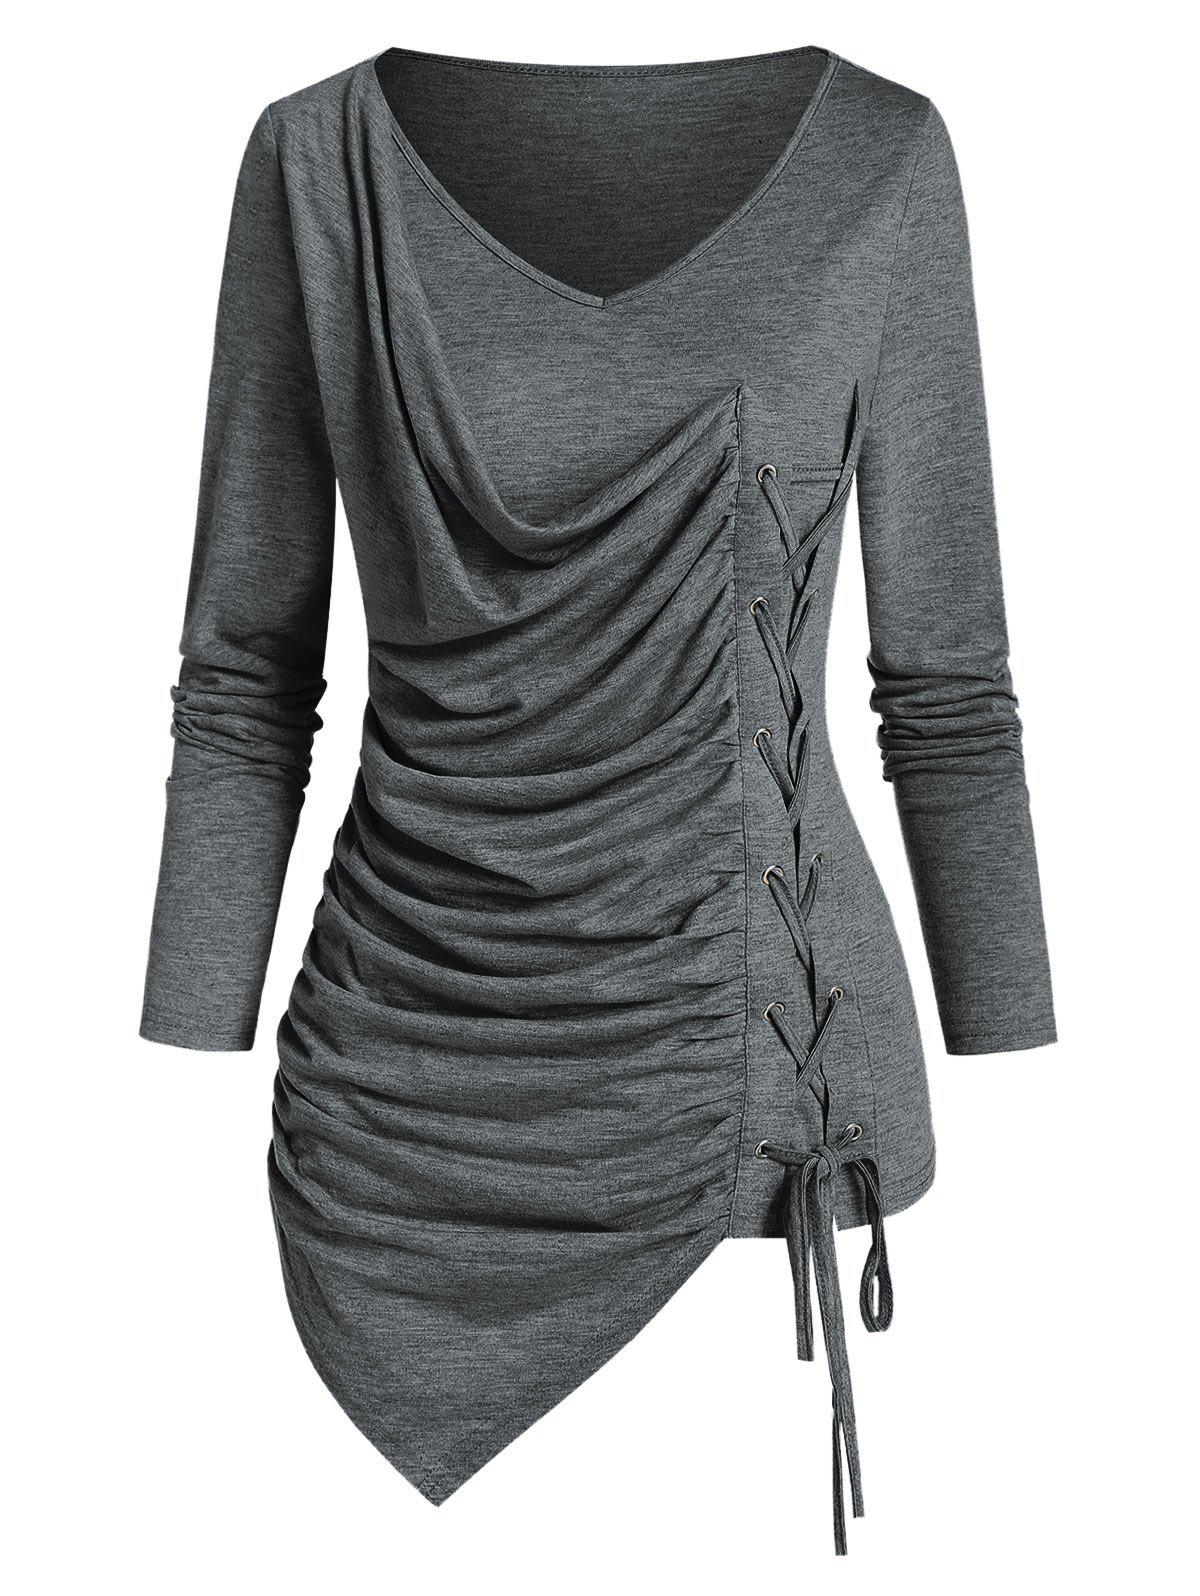 V Neck Lace Up Ruched Asymmetrical T Shirt - DARK GRAY XL